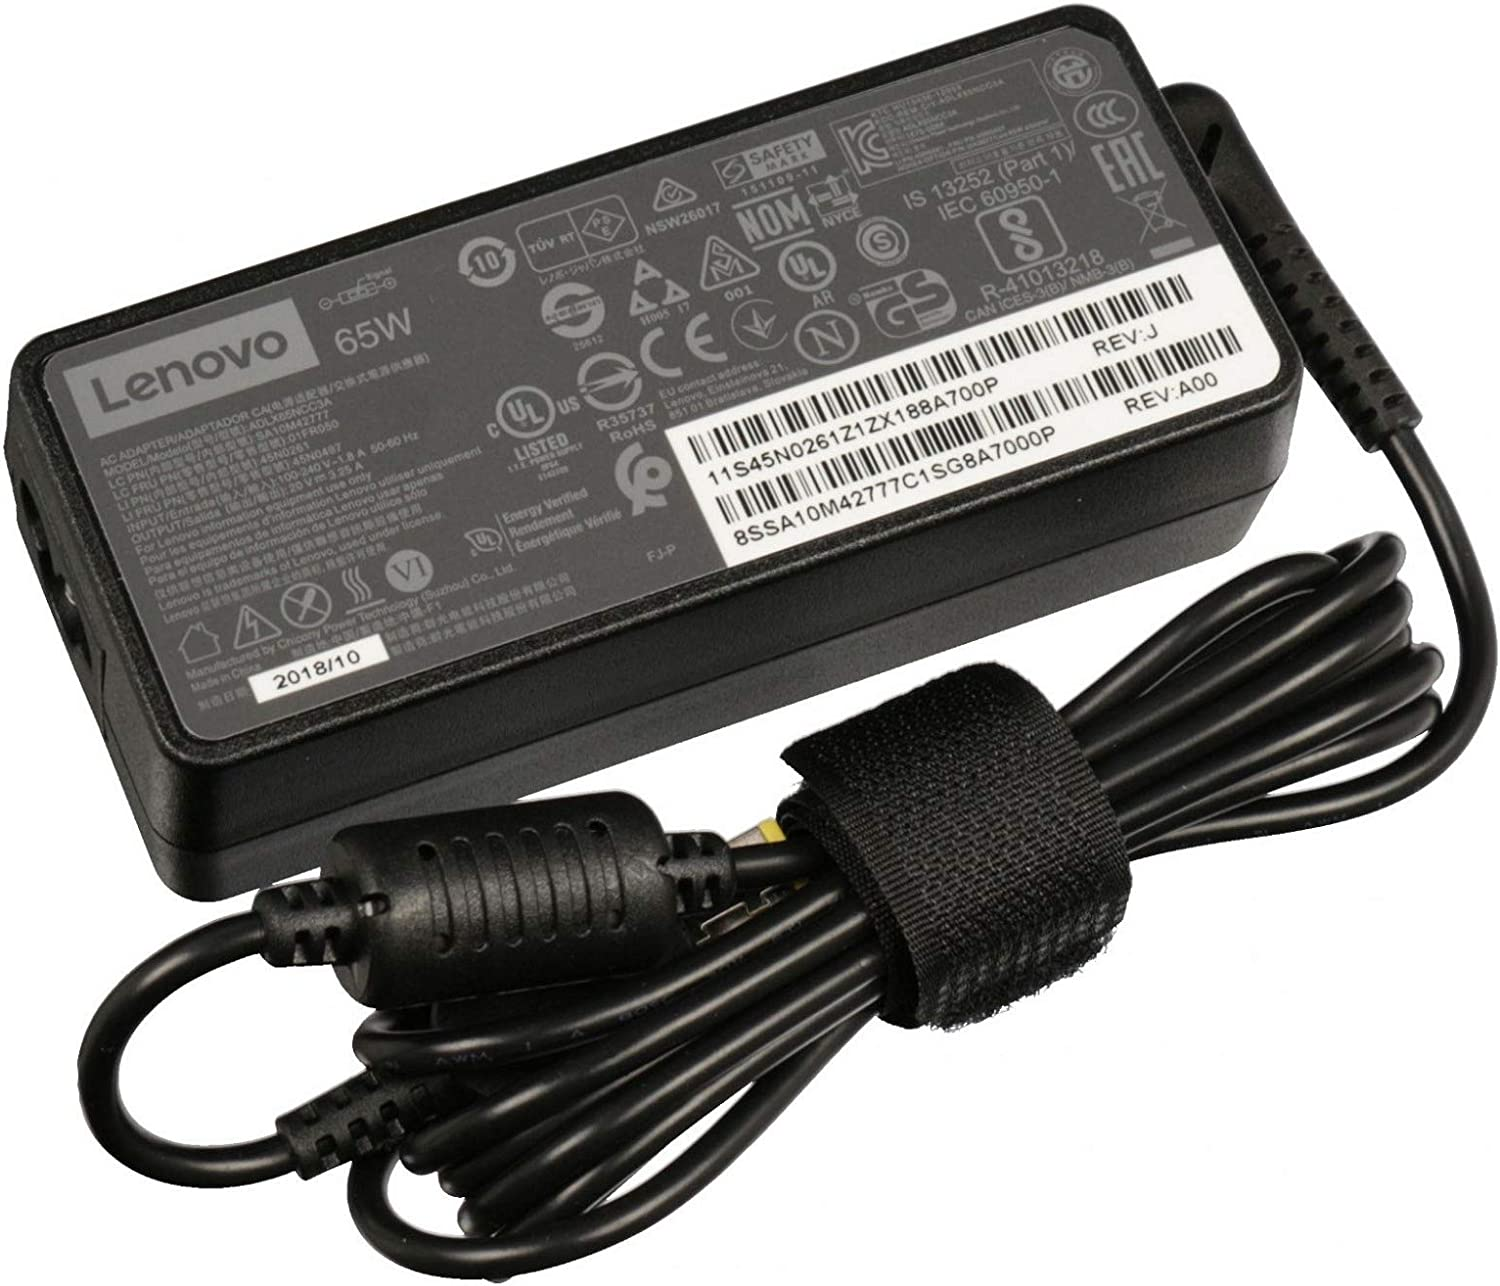 Ac Adapter Charger for Lenovo Z51 70